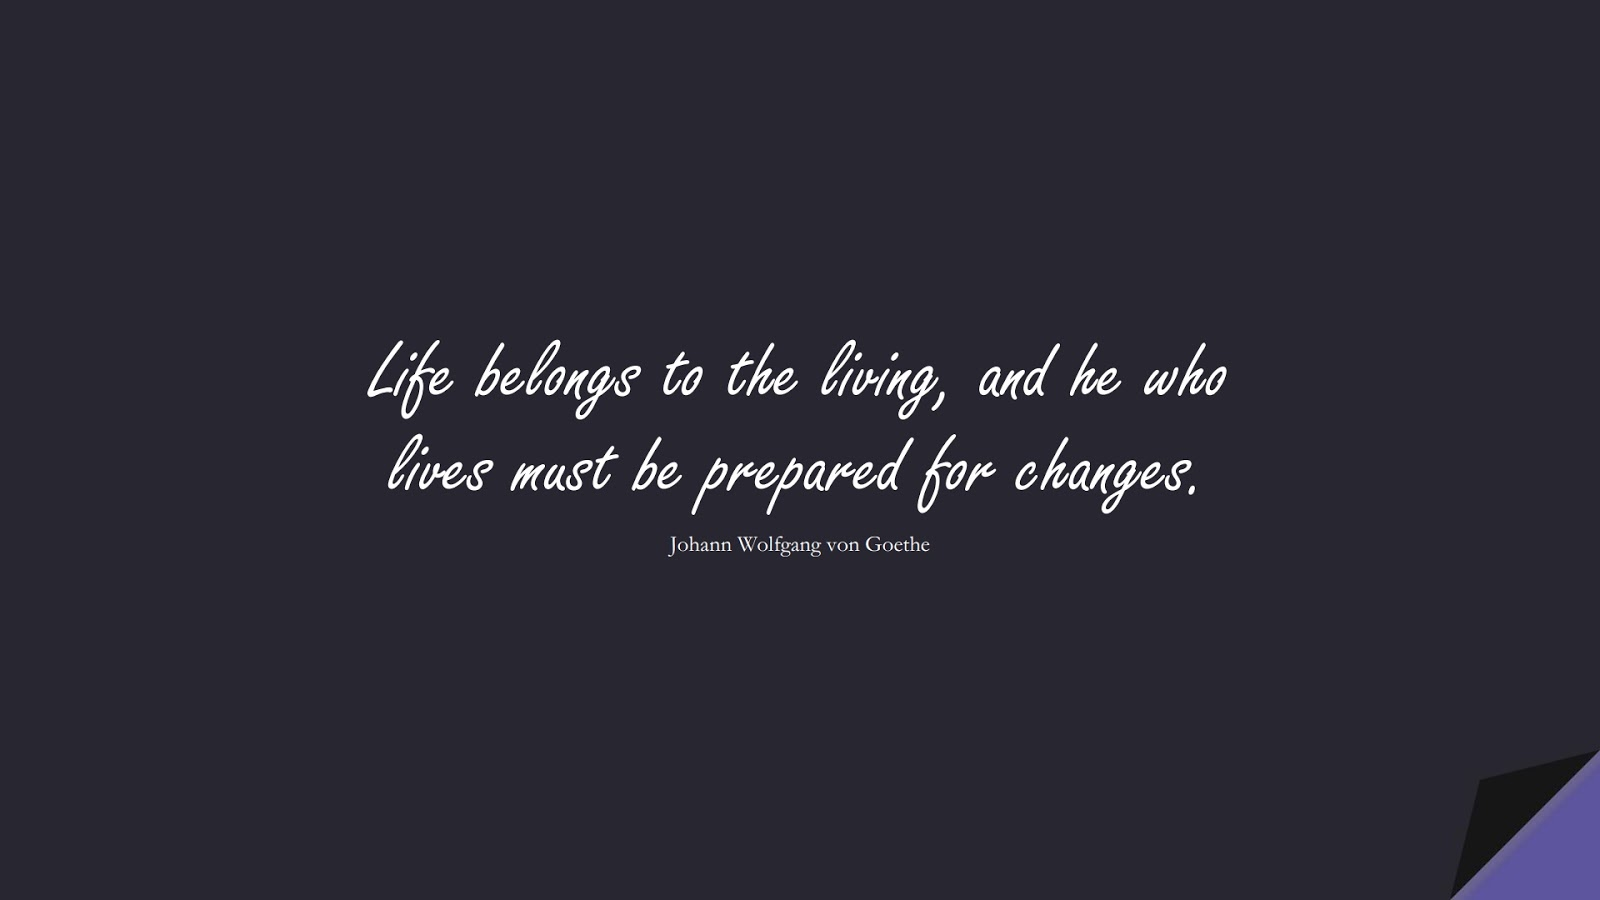 Life belongs to the living, and he who lives must be prepared for changes. (Johann Wolfgang von Goethe);  #ShortQuotes